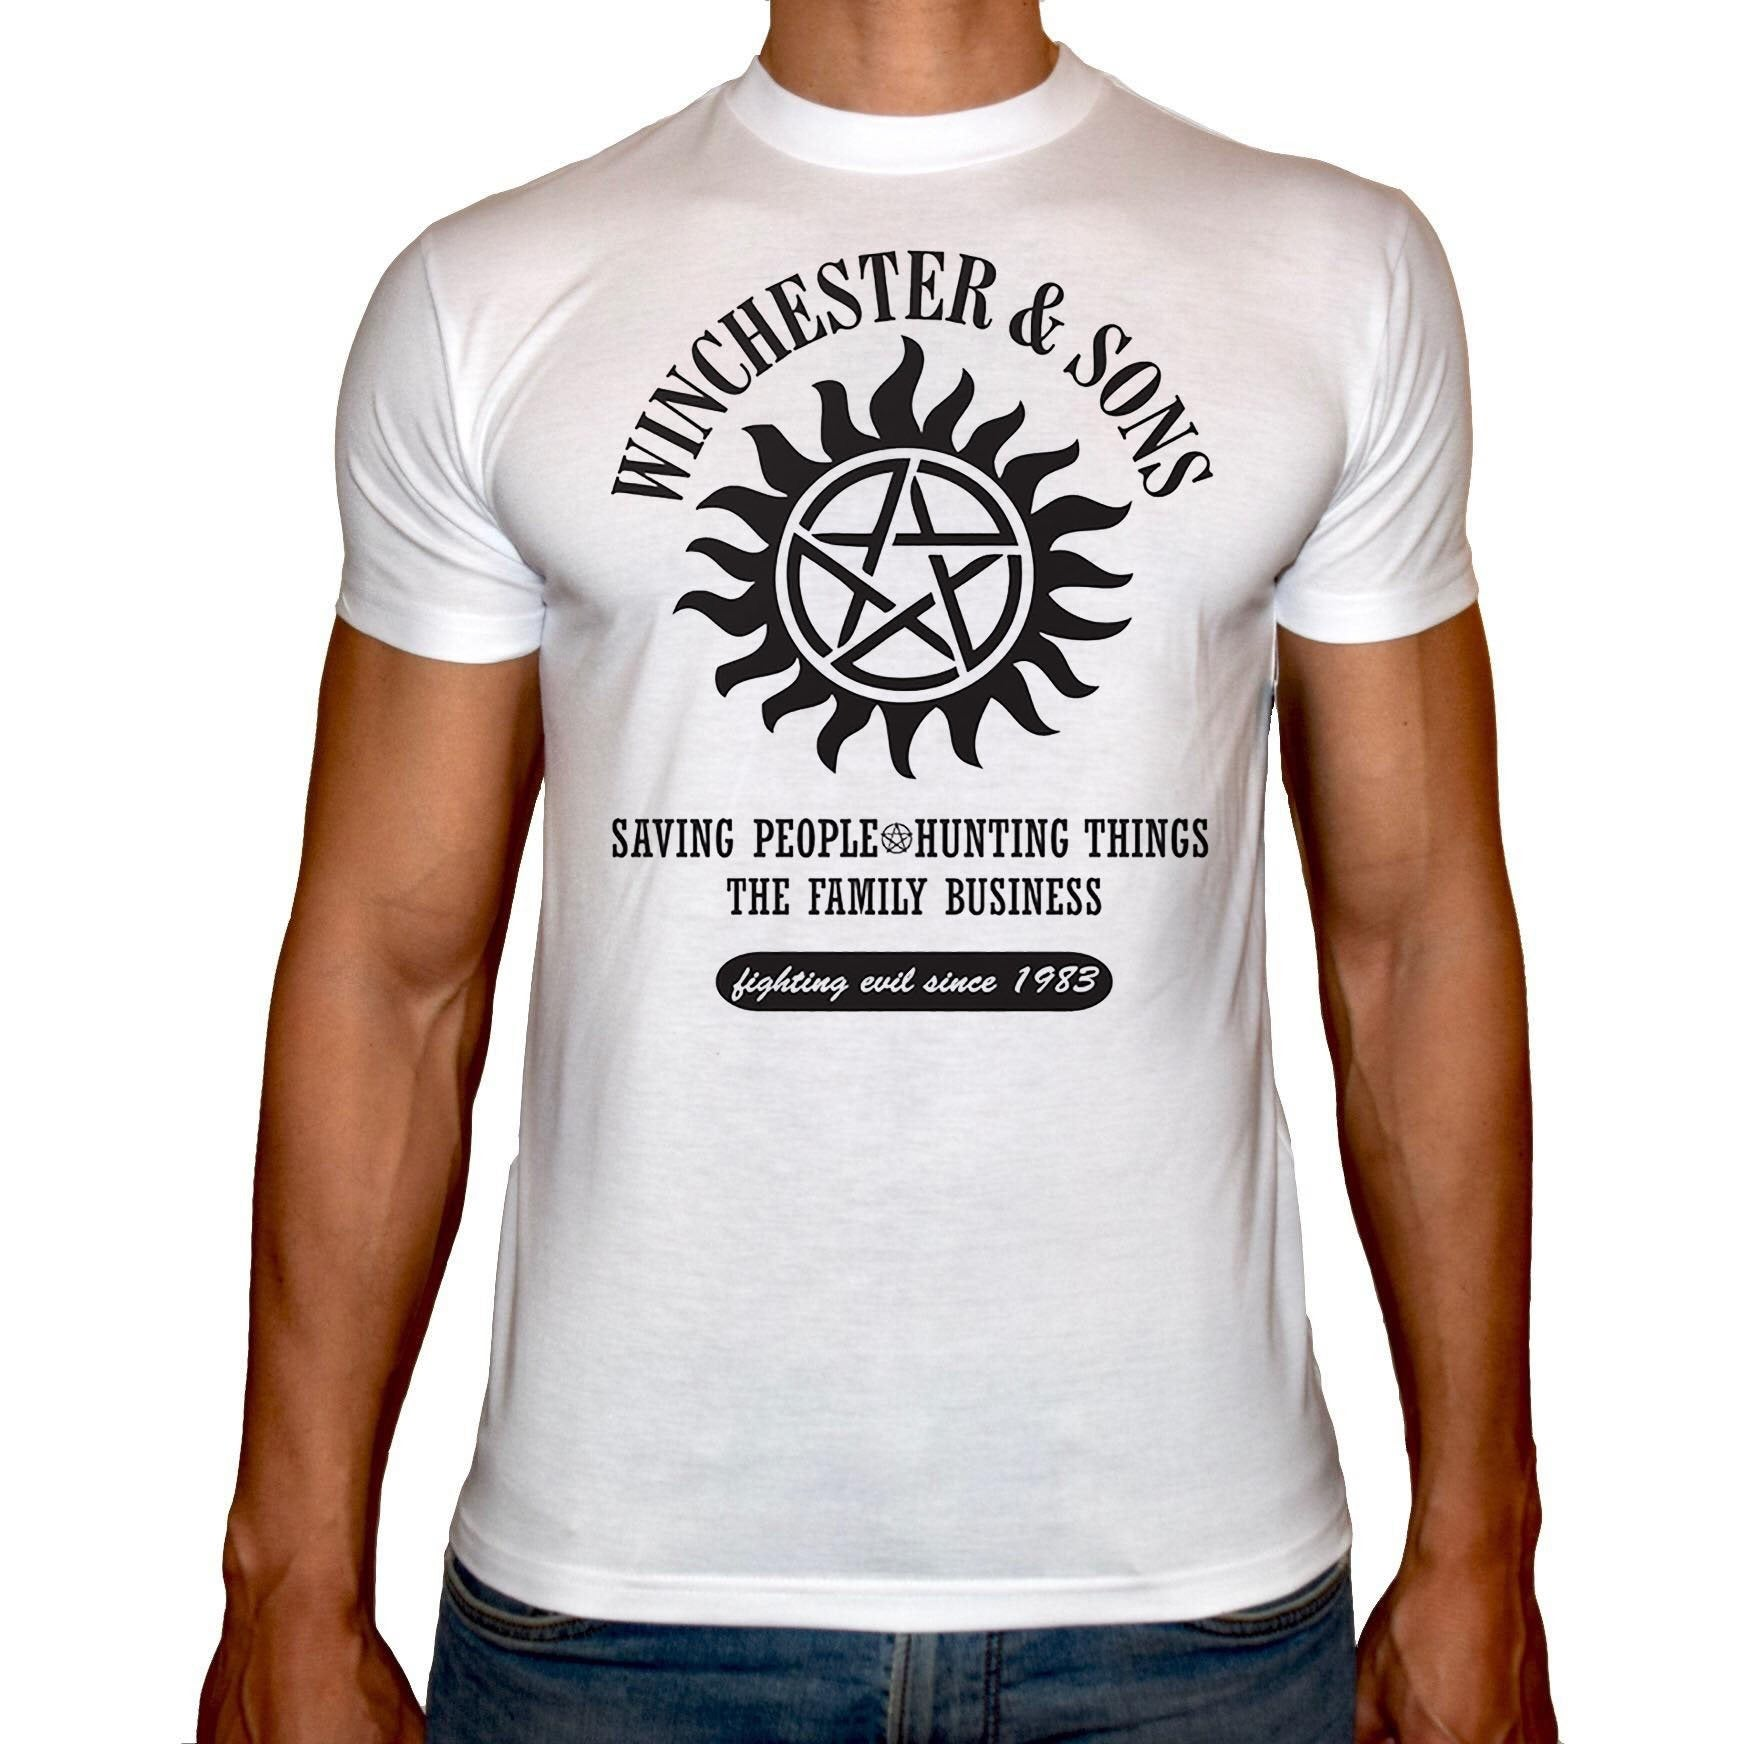 Phoenix WHITE Round Neck Printed T-Shirt Men (Supernatural)